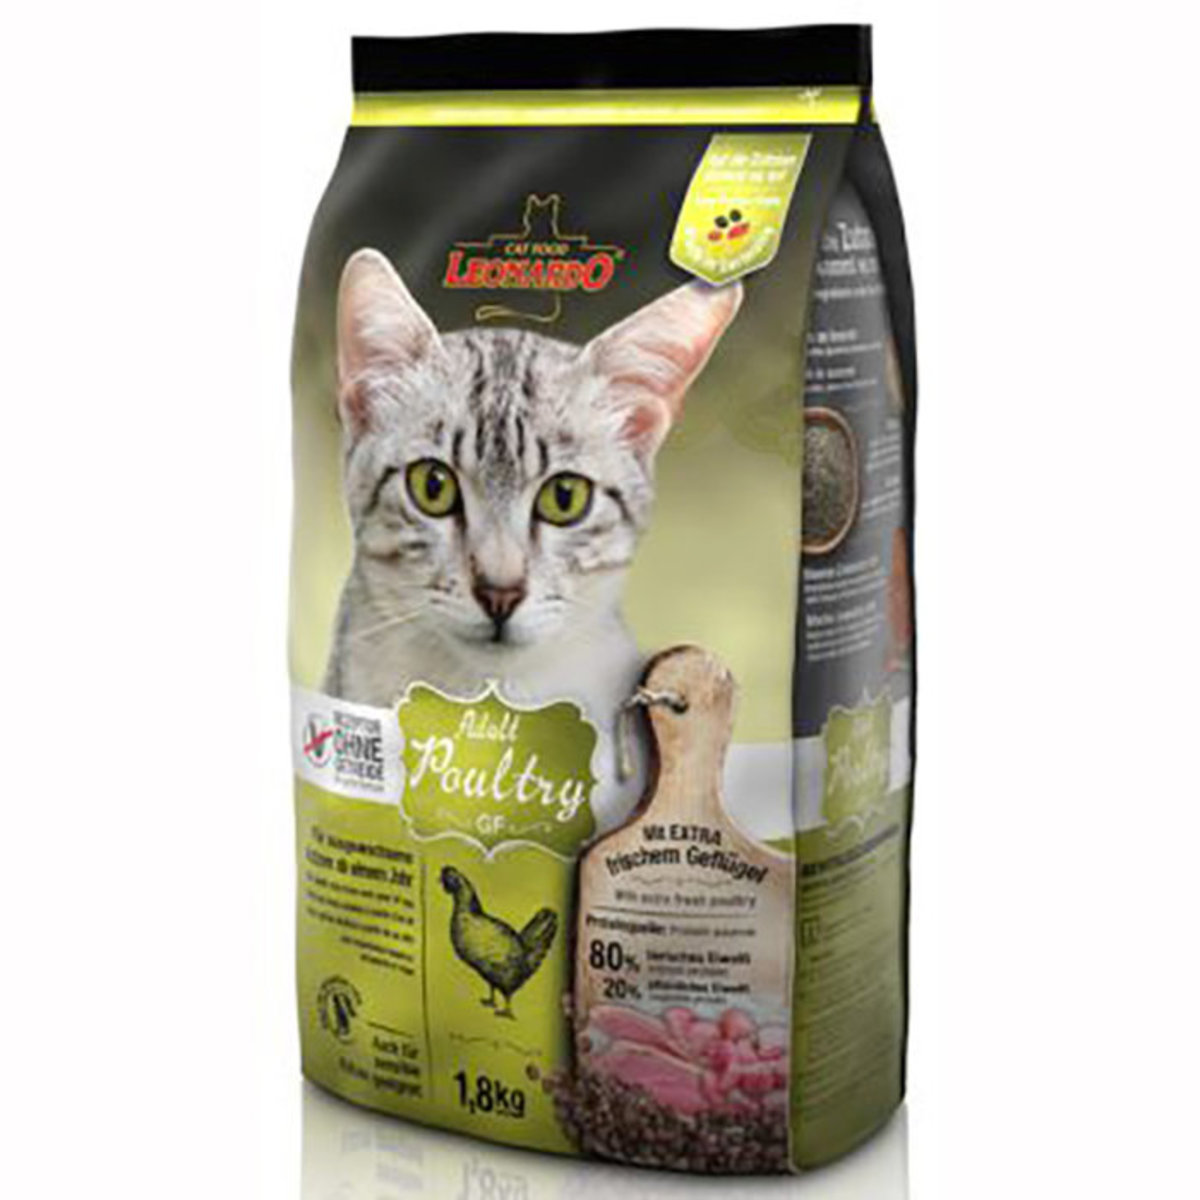 Grain Free Poultry for Adult Cat 1.8kg